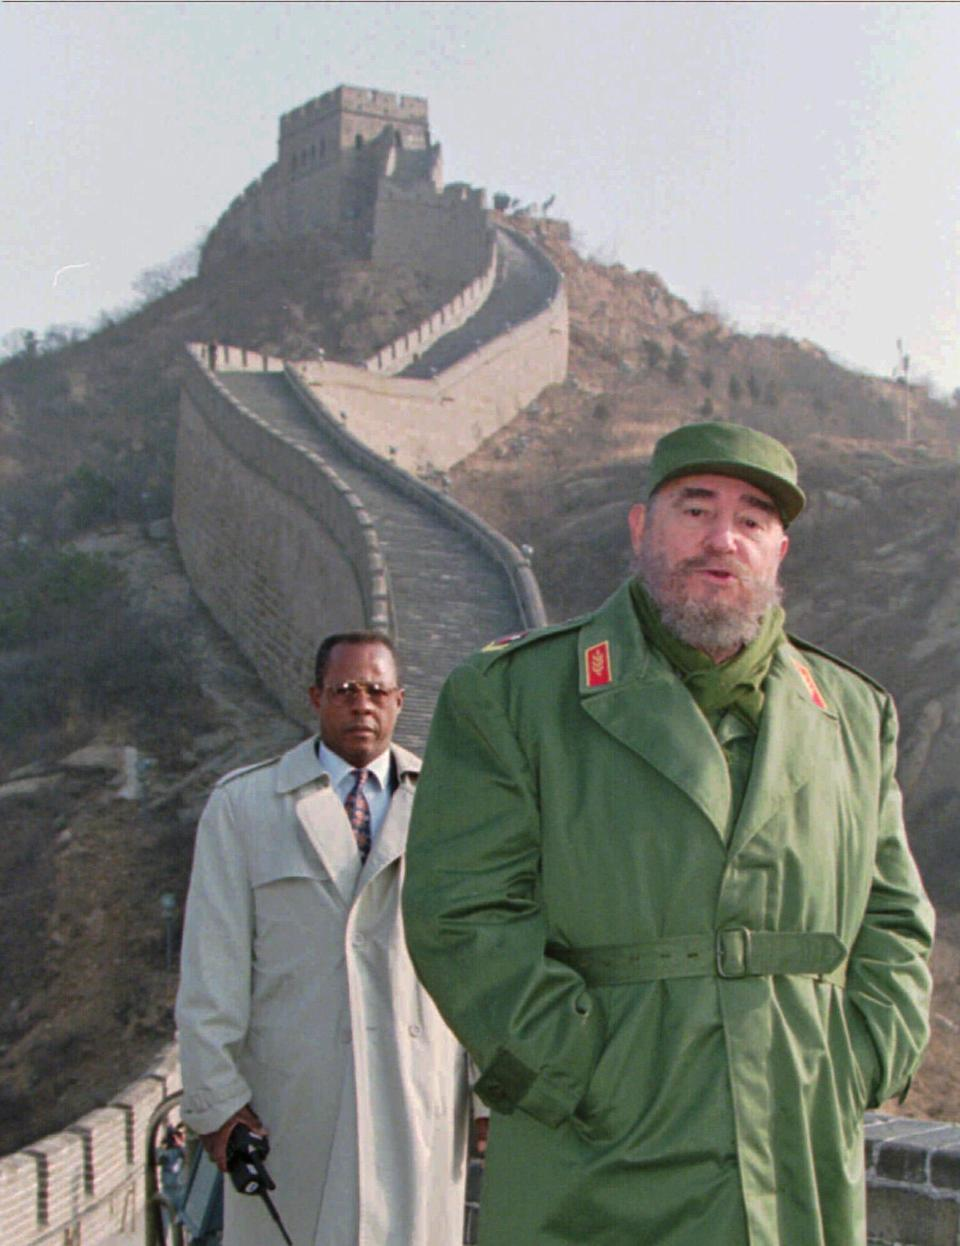 <p>Cuban President Fidel Castro stands on the Great Wall of China, 70 kilometers north of Beijing, Friday December 1, 1995. Castro, who is in China to boost trade and study the country's market oriented economy, was to spend the day sight-seeing before an evening meeting with Premier Li Peng. (AP Photo/Greg Baker) </p>